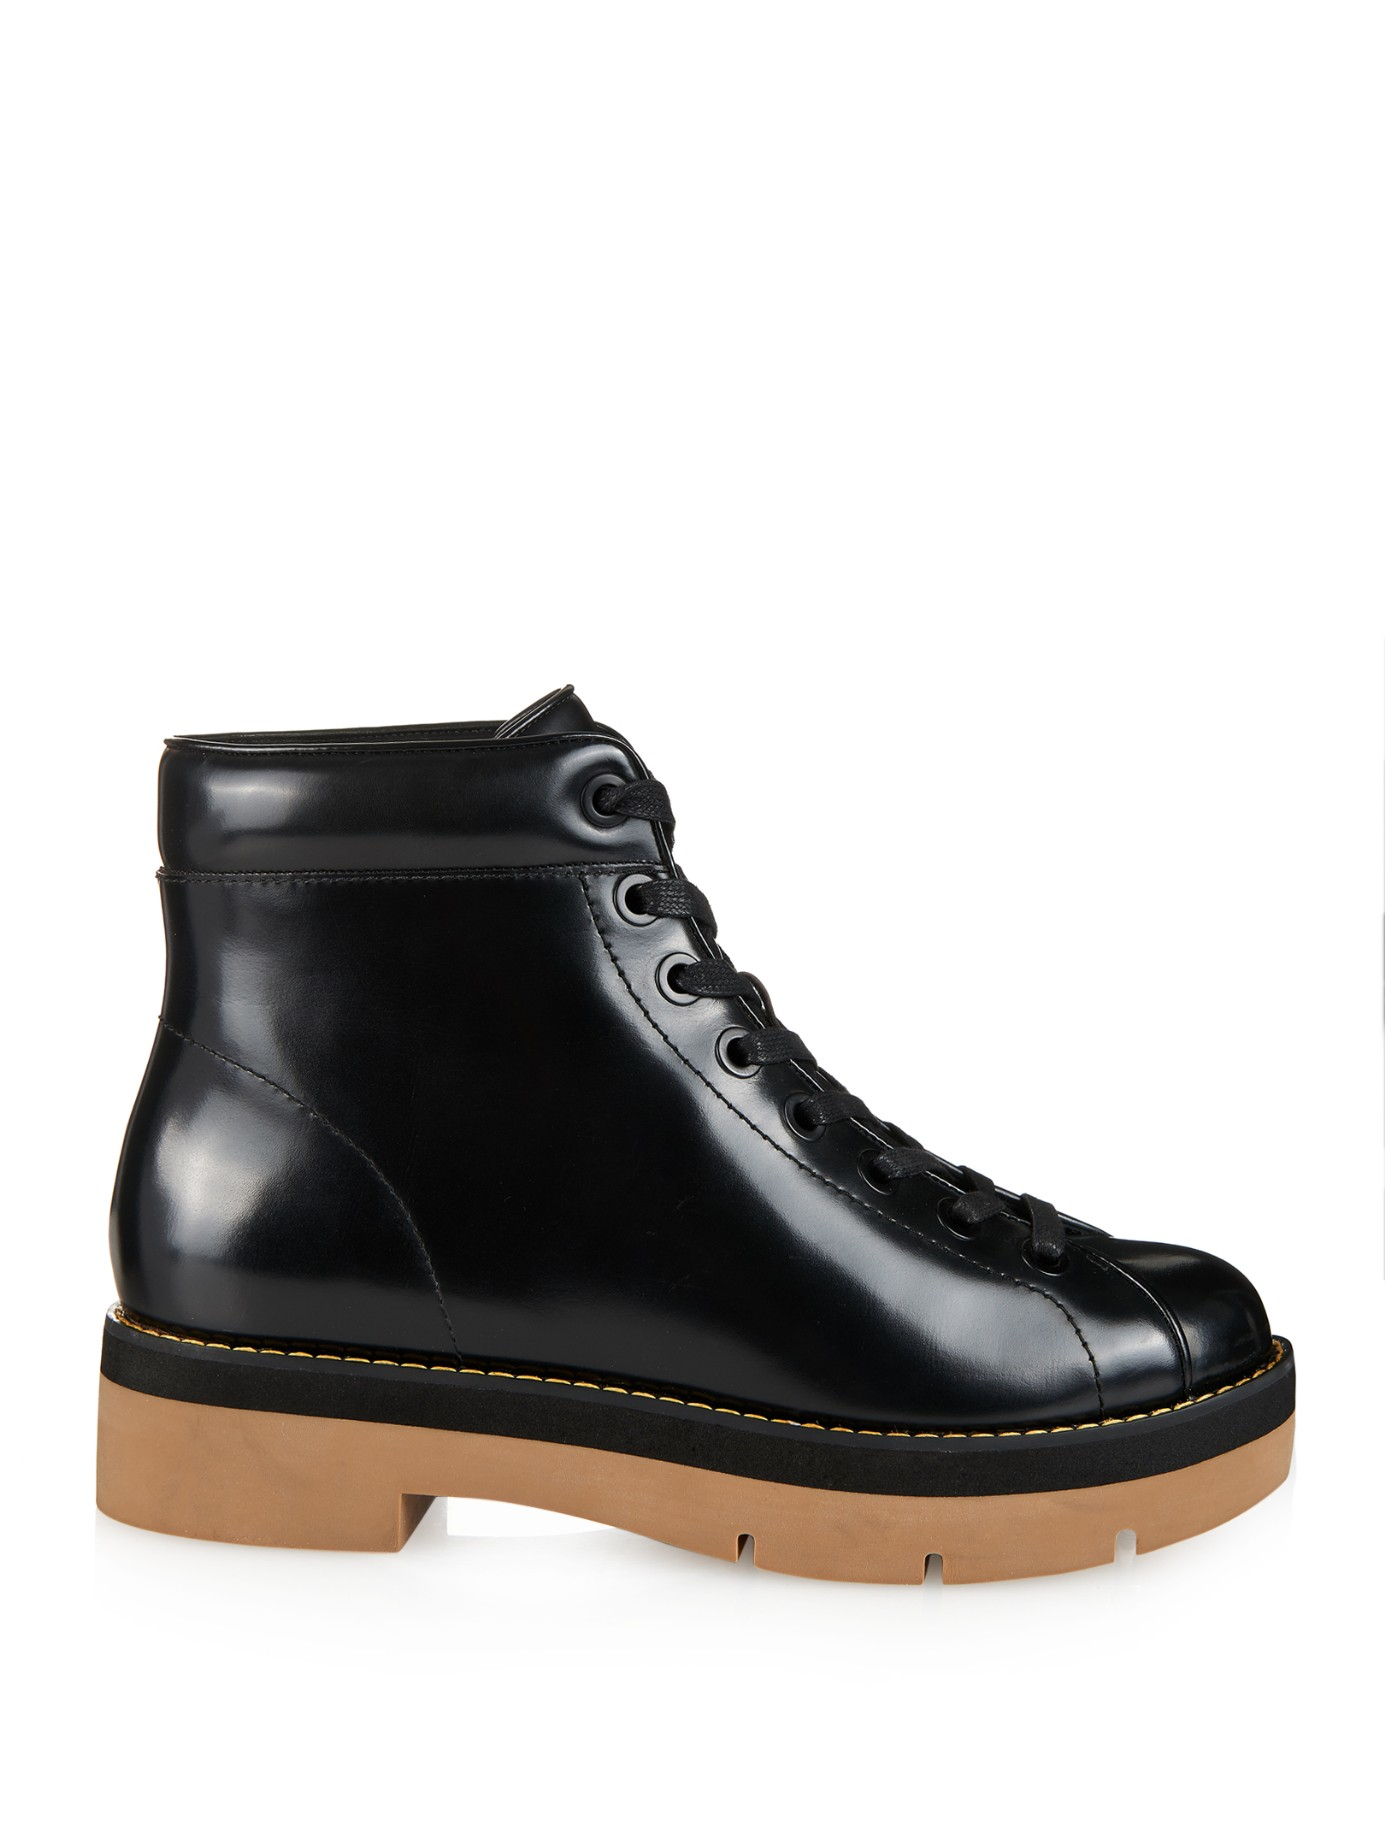 Lyst Boots Lace Leather Alexander in Ankle Black Genevieve Up Wang Sgr4xS